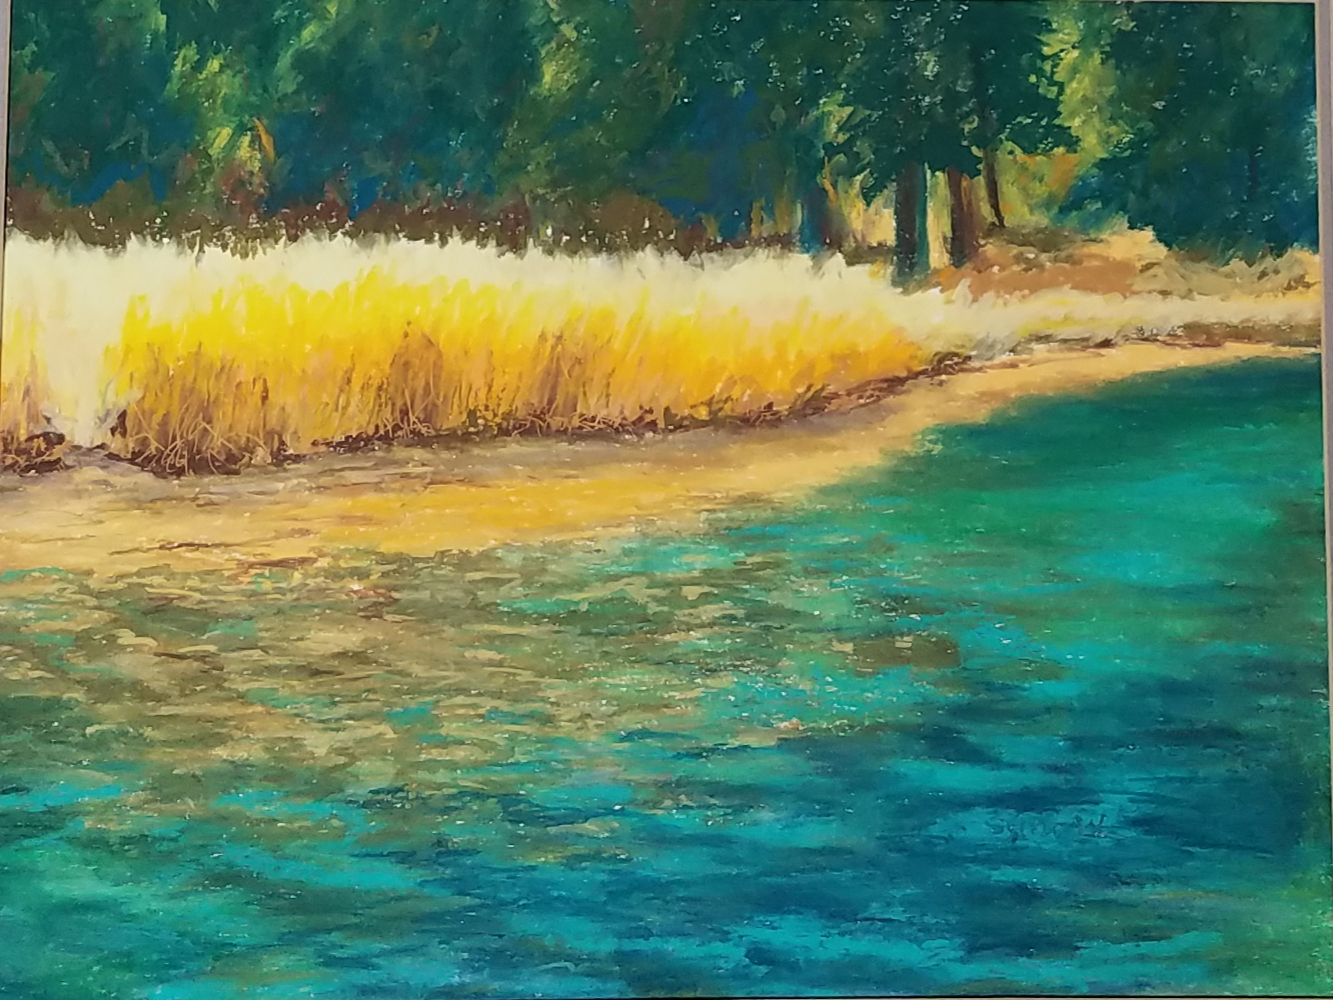 Truckee River from the bike path near Tahoe City                               Oil Pastel, 12 x 16 inches